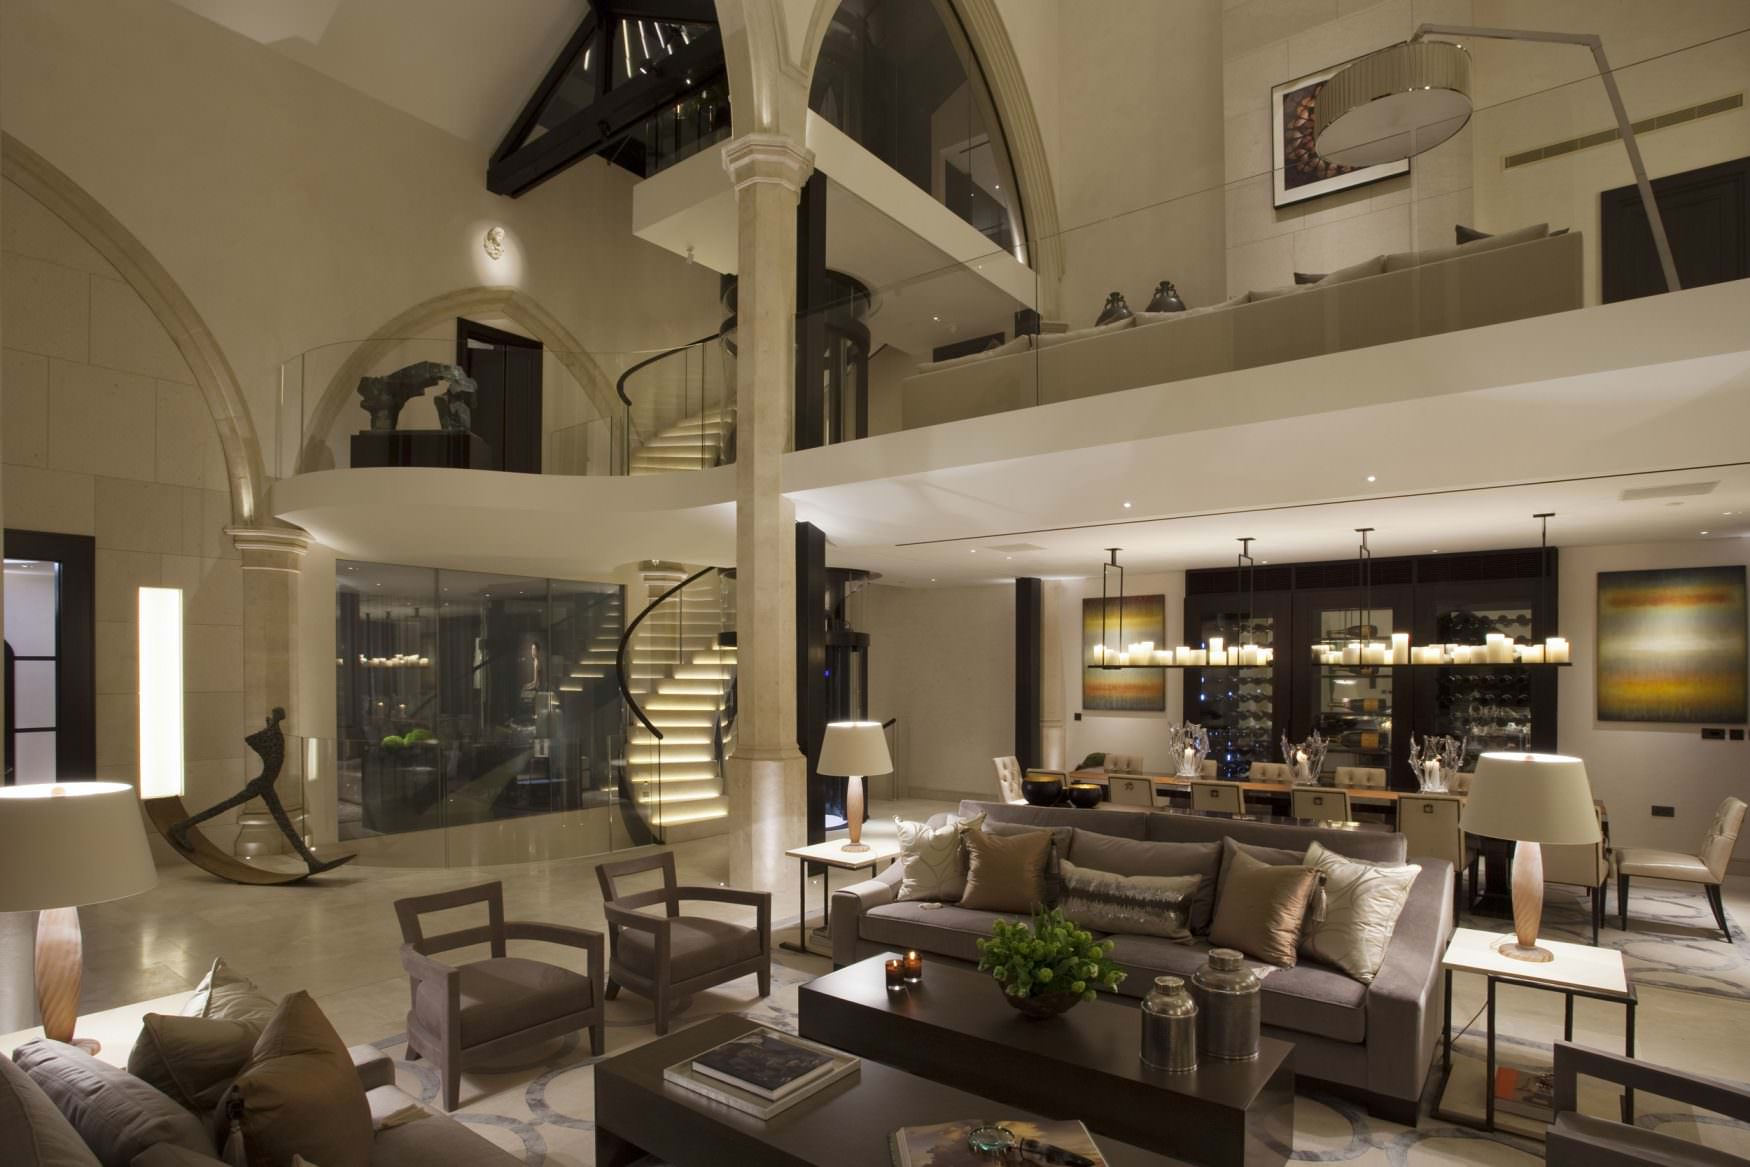 Knightsbridge house taylor howes for Knightsbridge homes